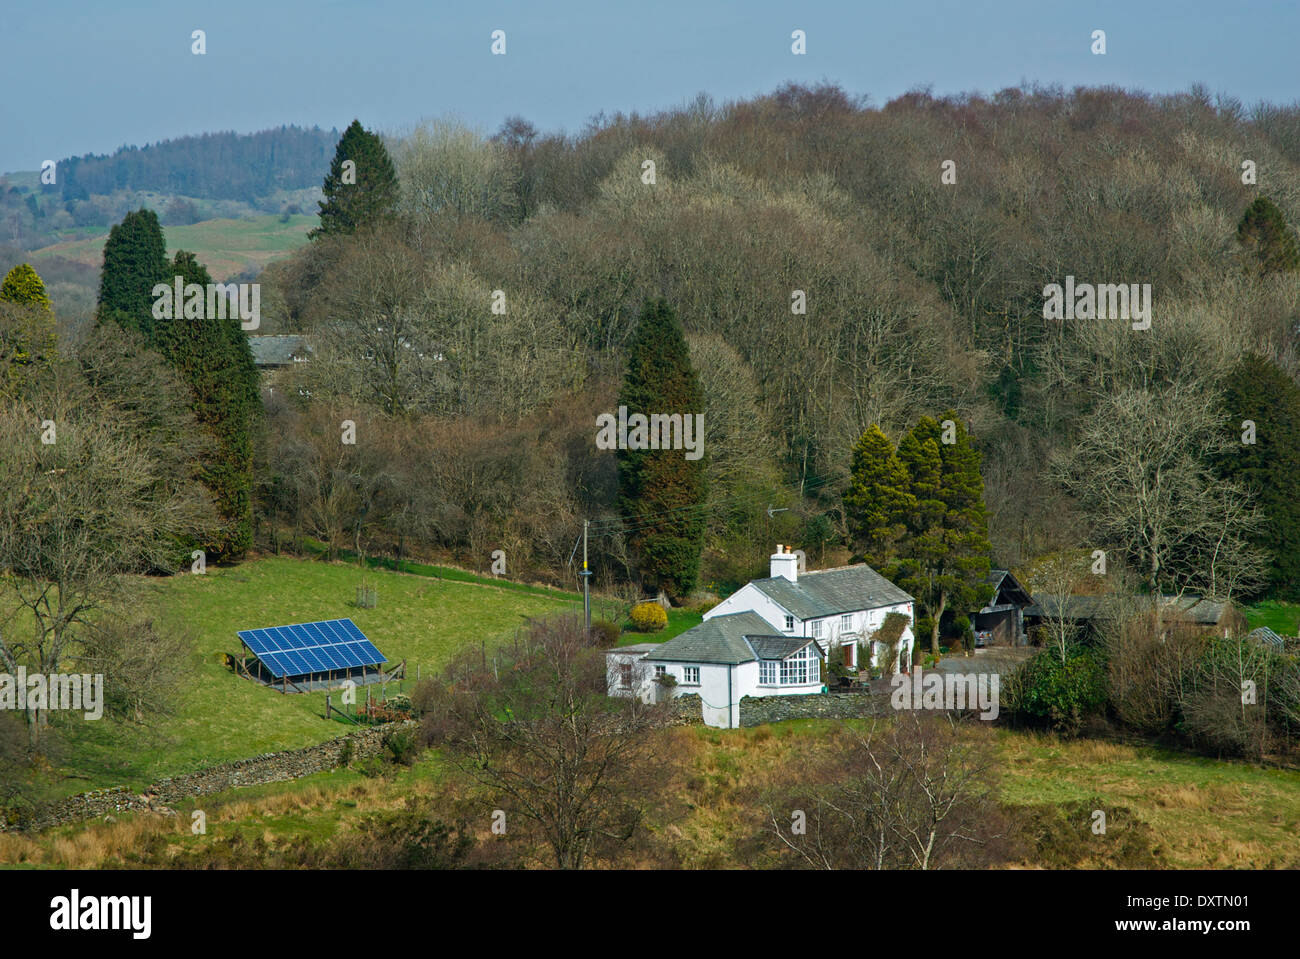 Ash Cottage, with solar panels, near Bowness, Lake District National Park, Cumbria, England UK - Stock Image